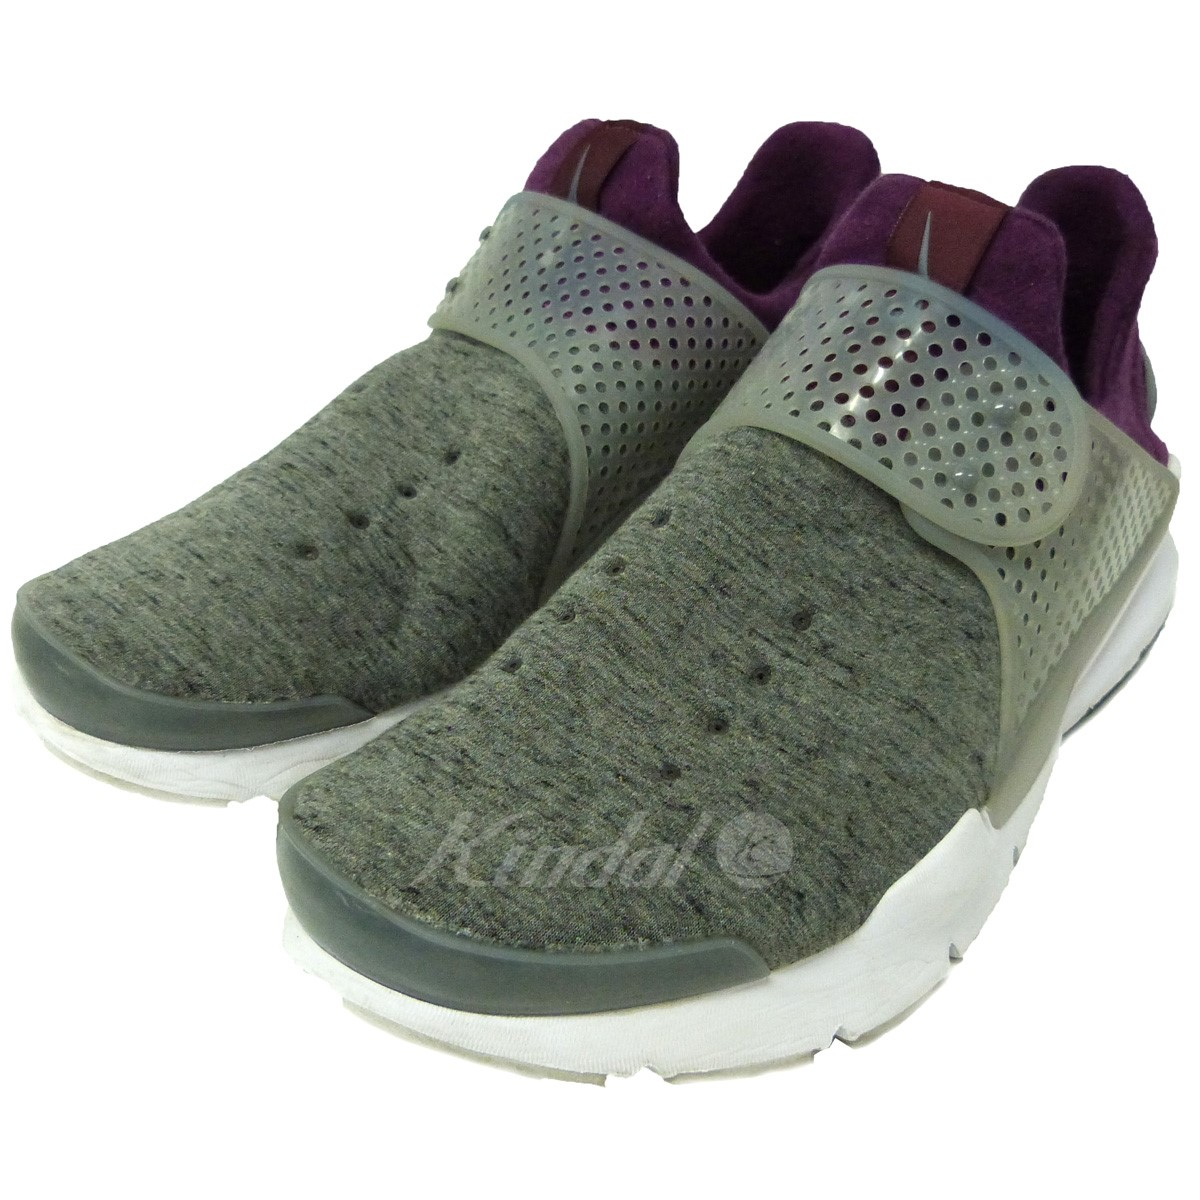 【中古】NIKE 834669-006「SOCK DART TECH FLEECE」スニーカー 【送料無料】 【049221】 【KIND1641】